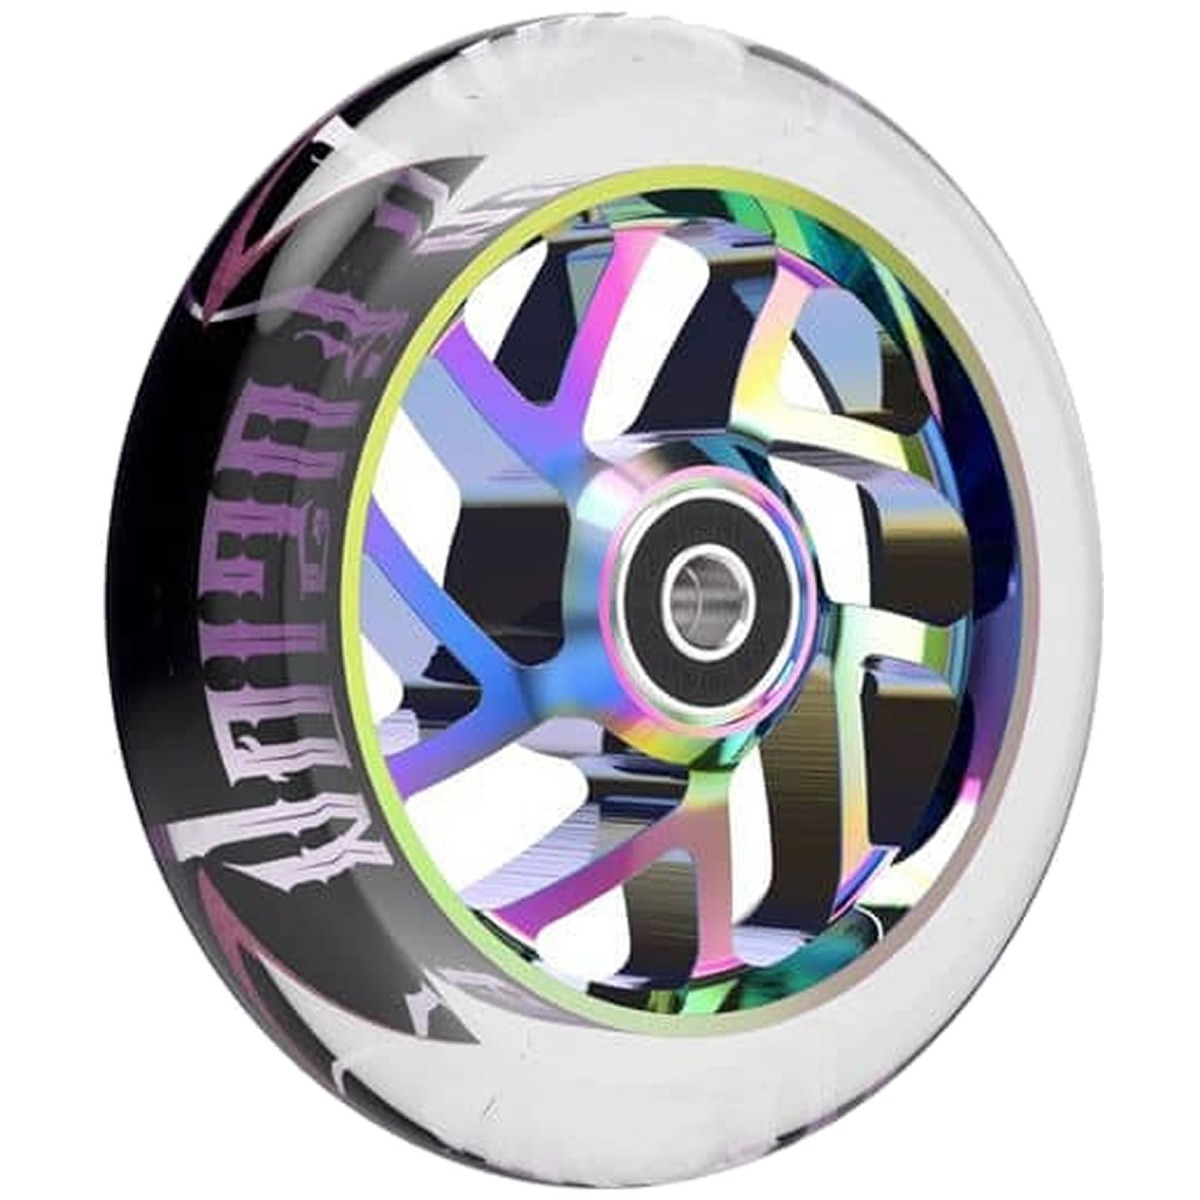 An image of Fuzion Flight 110mm Scooter Wheels - Clear Neochrome